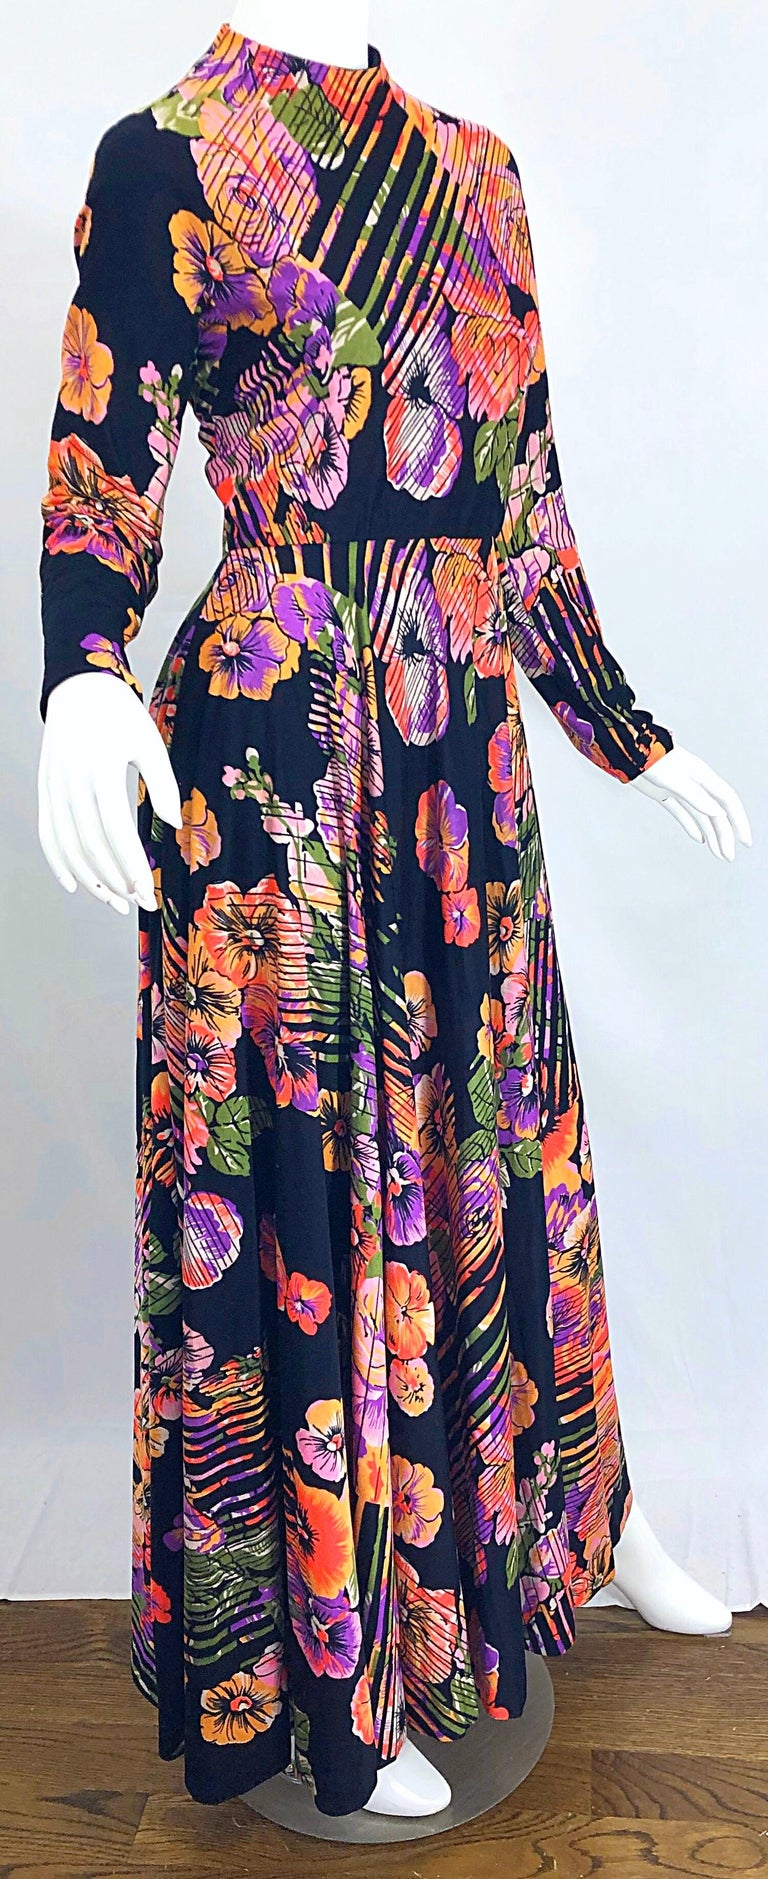 Geoffrey Beene 1970s Abstract Flower Print Long Sleeve High Neck 70s Maxi Dress For Sale 3